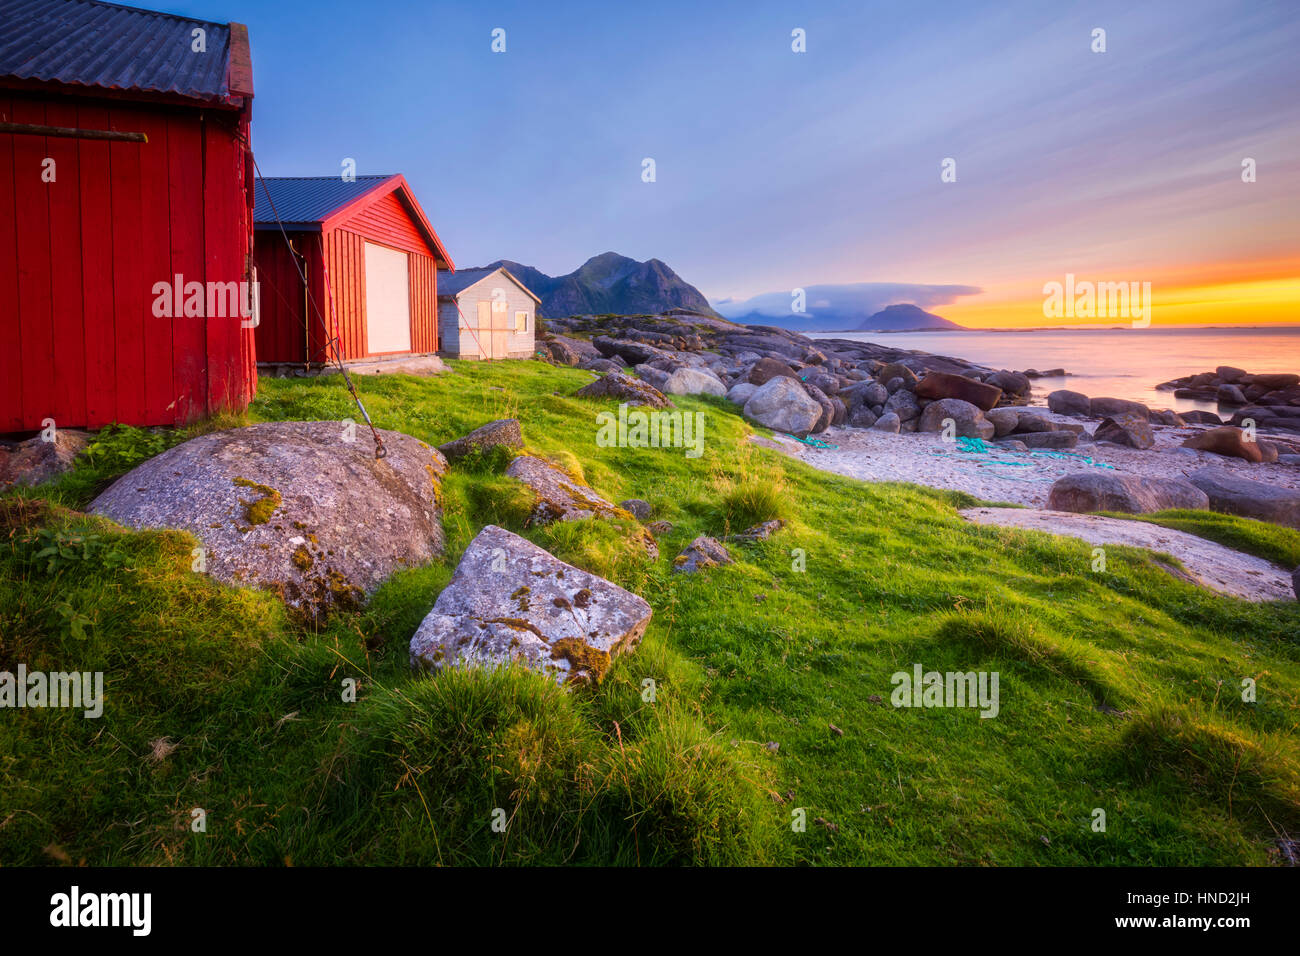 Brenna Boat Sheds at sunset - Stock Image